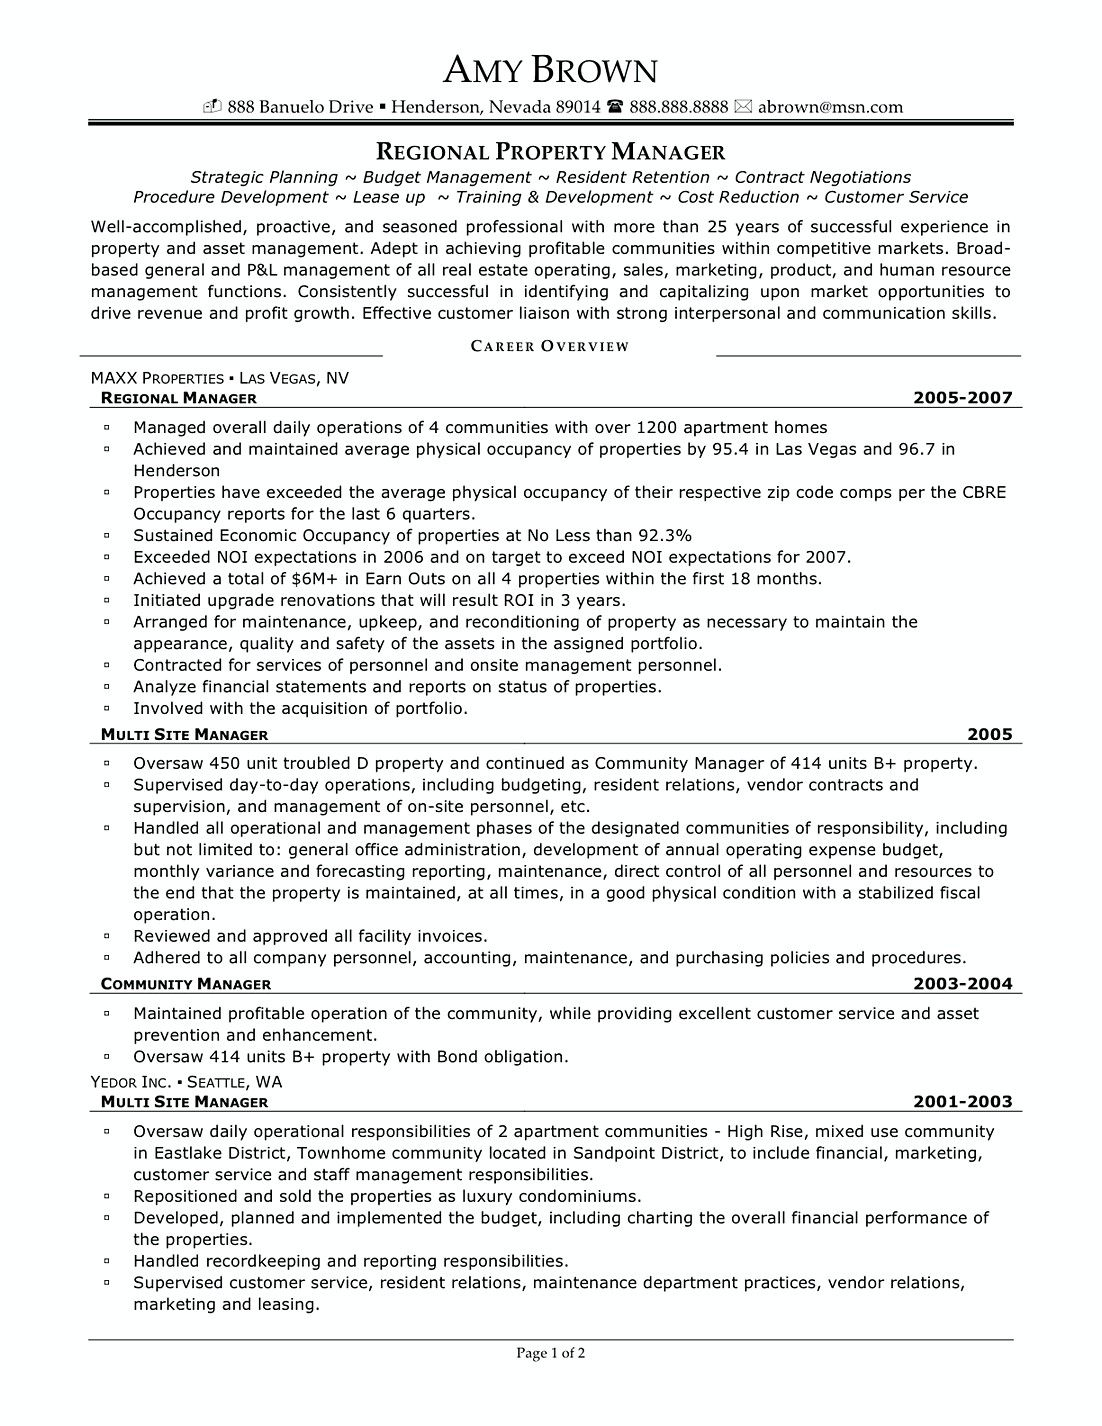 regional property manager resume - 28 images - the most brilliant ...